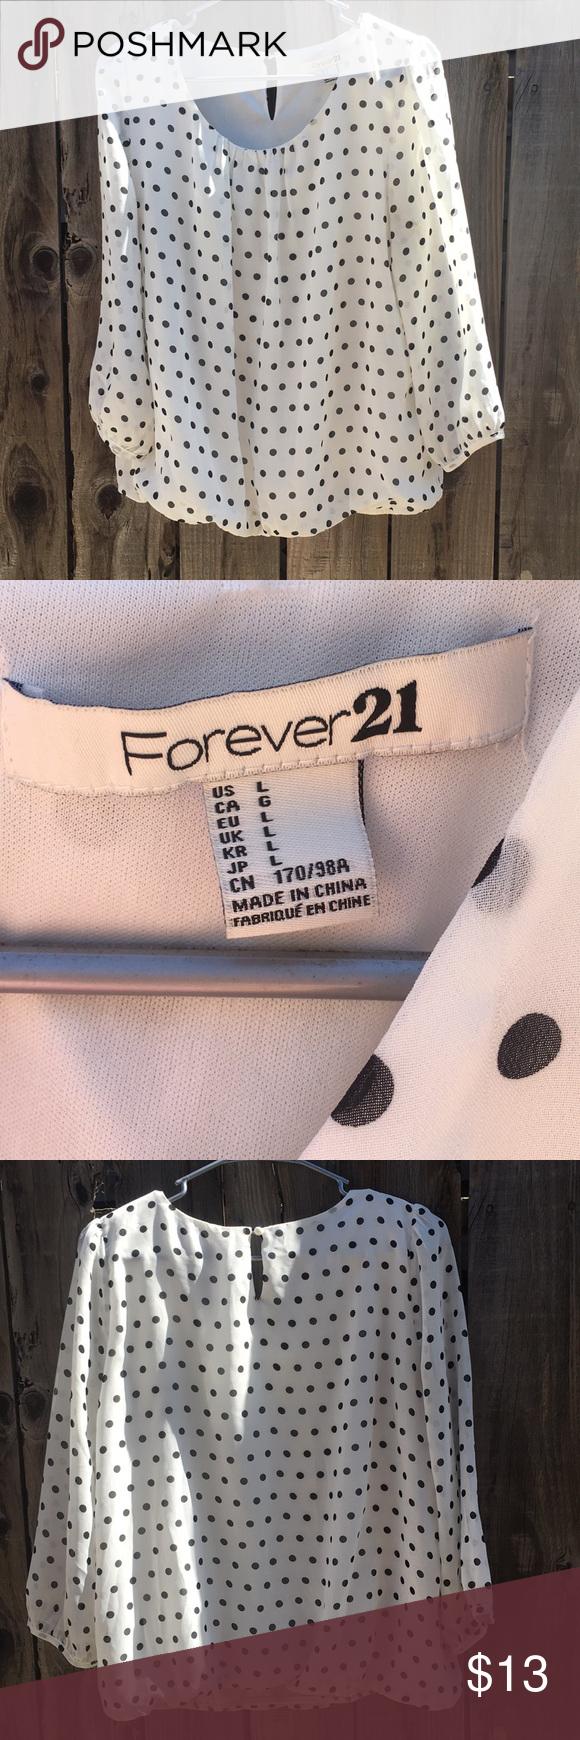 Forever 21 polka dot top White with black dots. Lined in white. Outer is  sheer. Arms are sheer with no lining. Between 1 2 and 3 4 sleeve depending  on arm ... 4828b8babf8f8